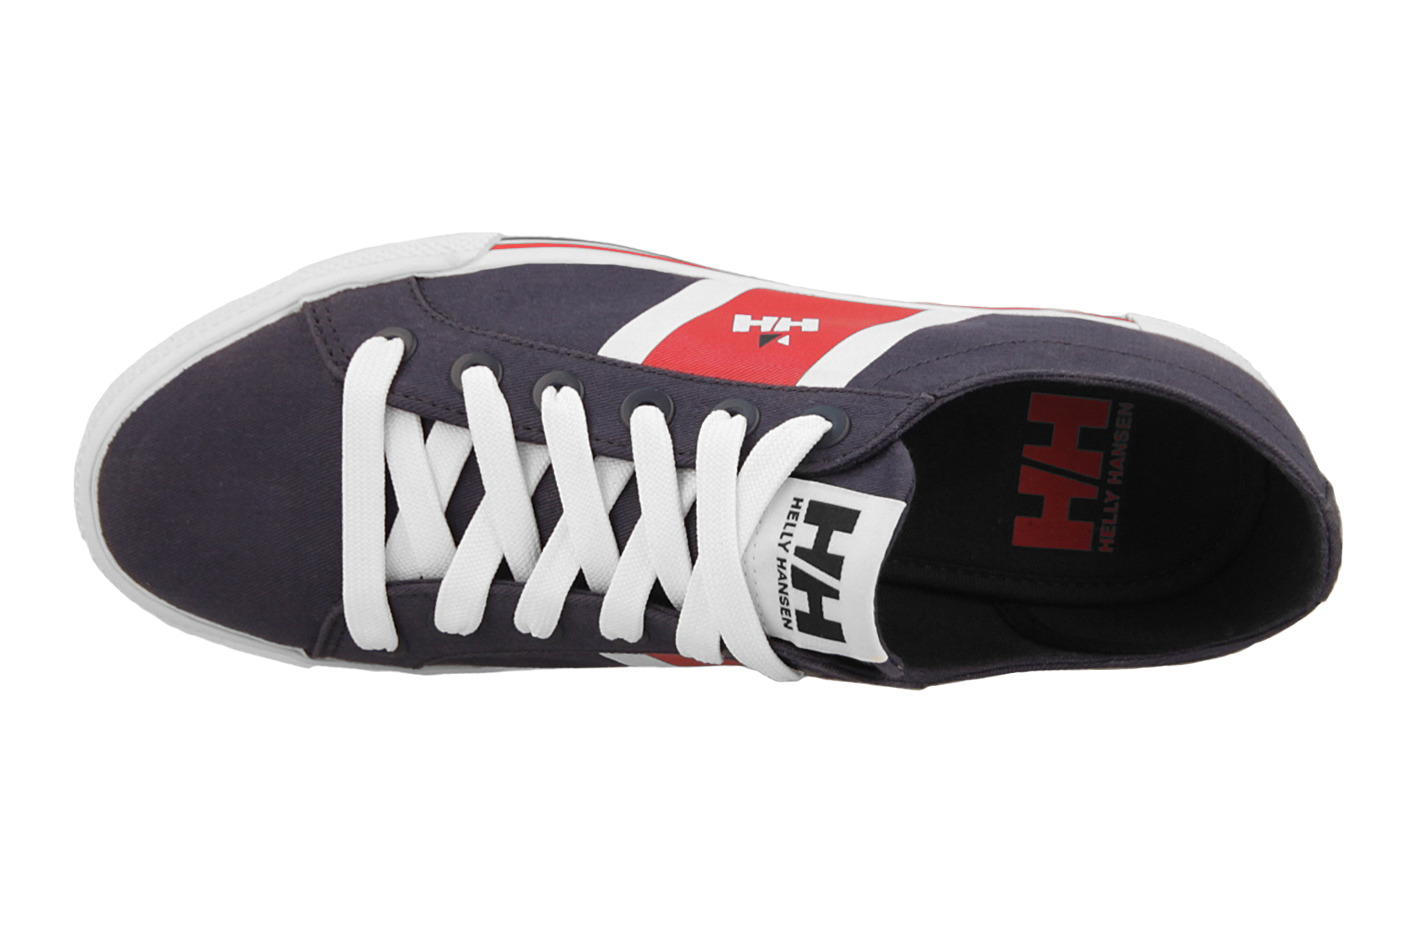 http://yessport.pl/pol_pl_BUTY-HELLY-HANSEN-BERGE-VIKING-LOW-10764-597-7603_4.jpg